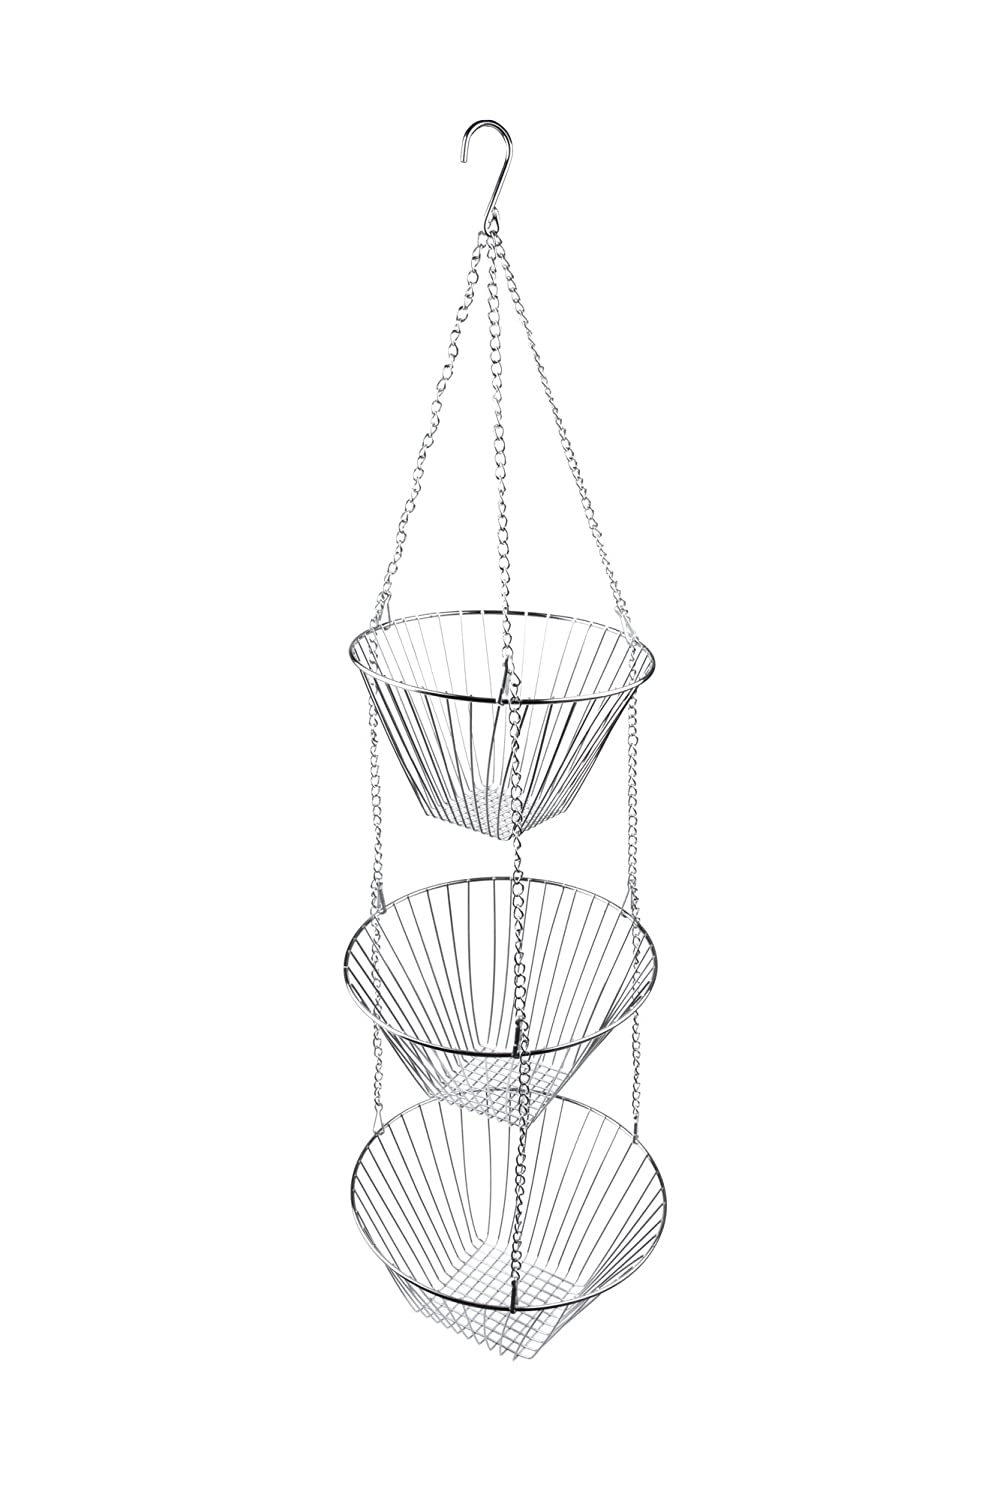 Fox Run 6312 Three Tier Hanging Wire Baskets, Chrome, One Size, Silver Fox Run Craftsmen 6312COM